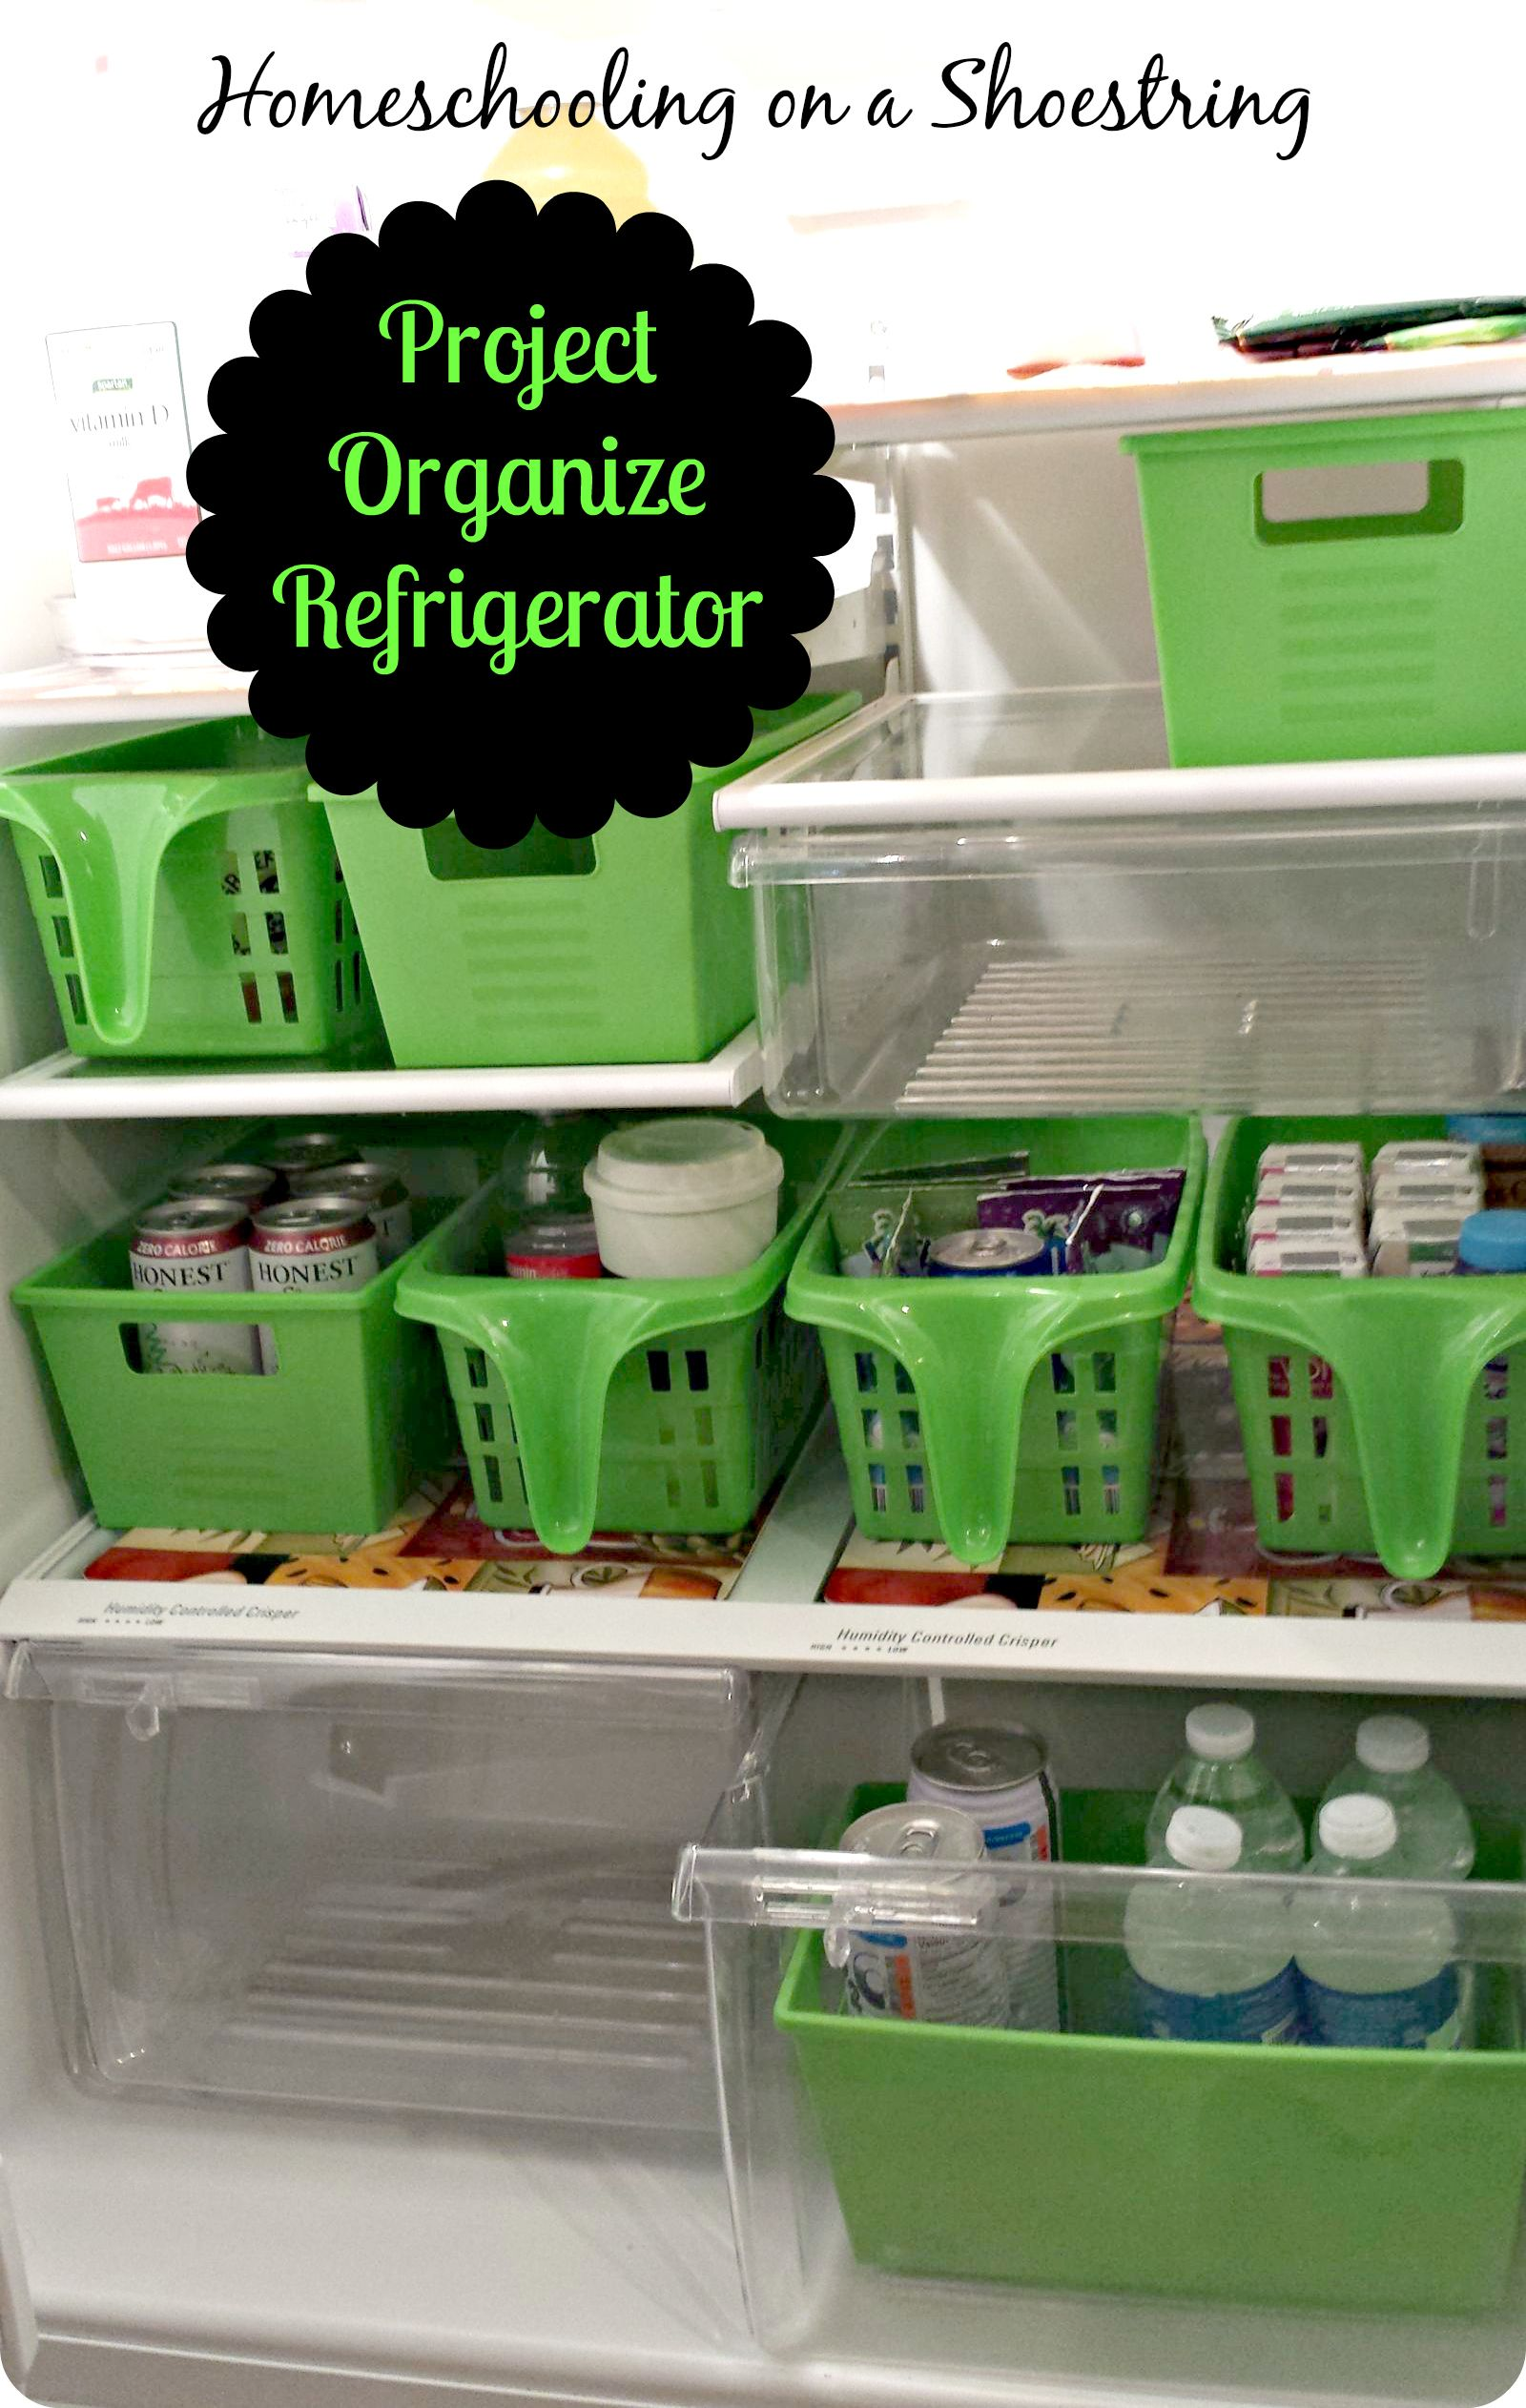 project organize refrigerator homeschooling on a